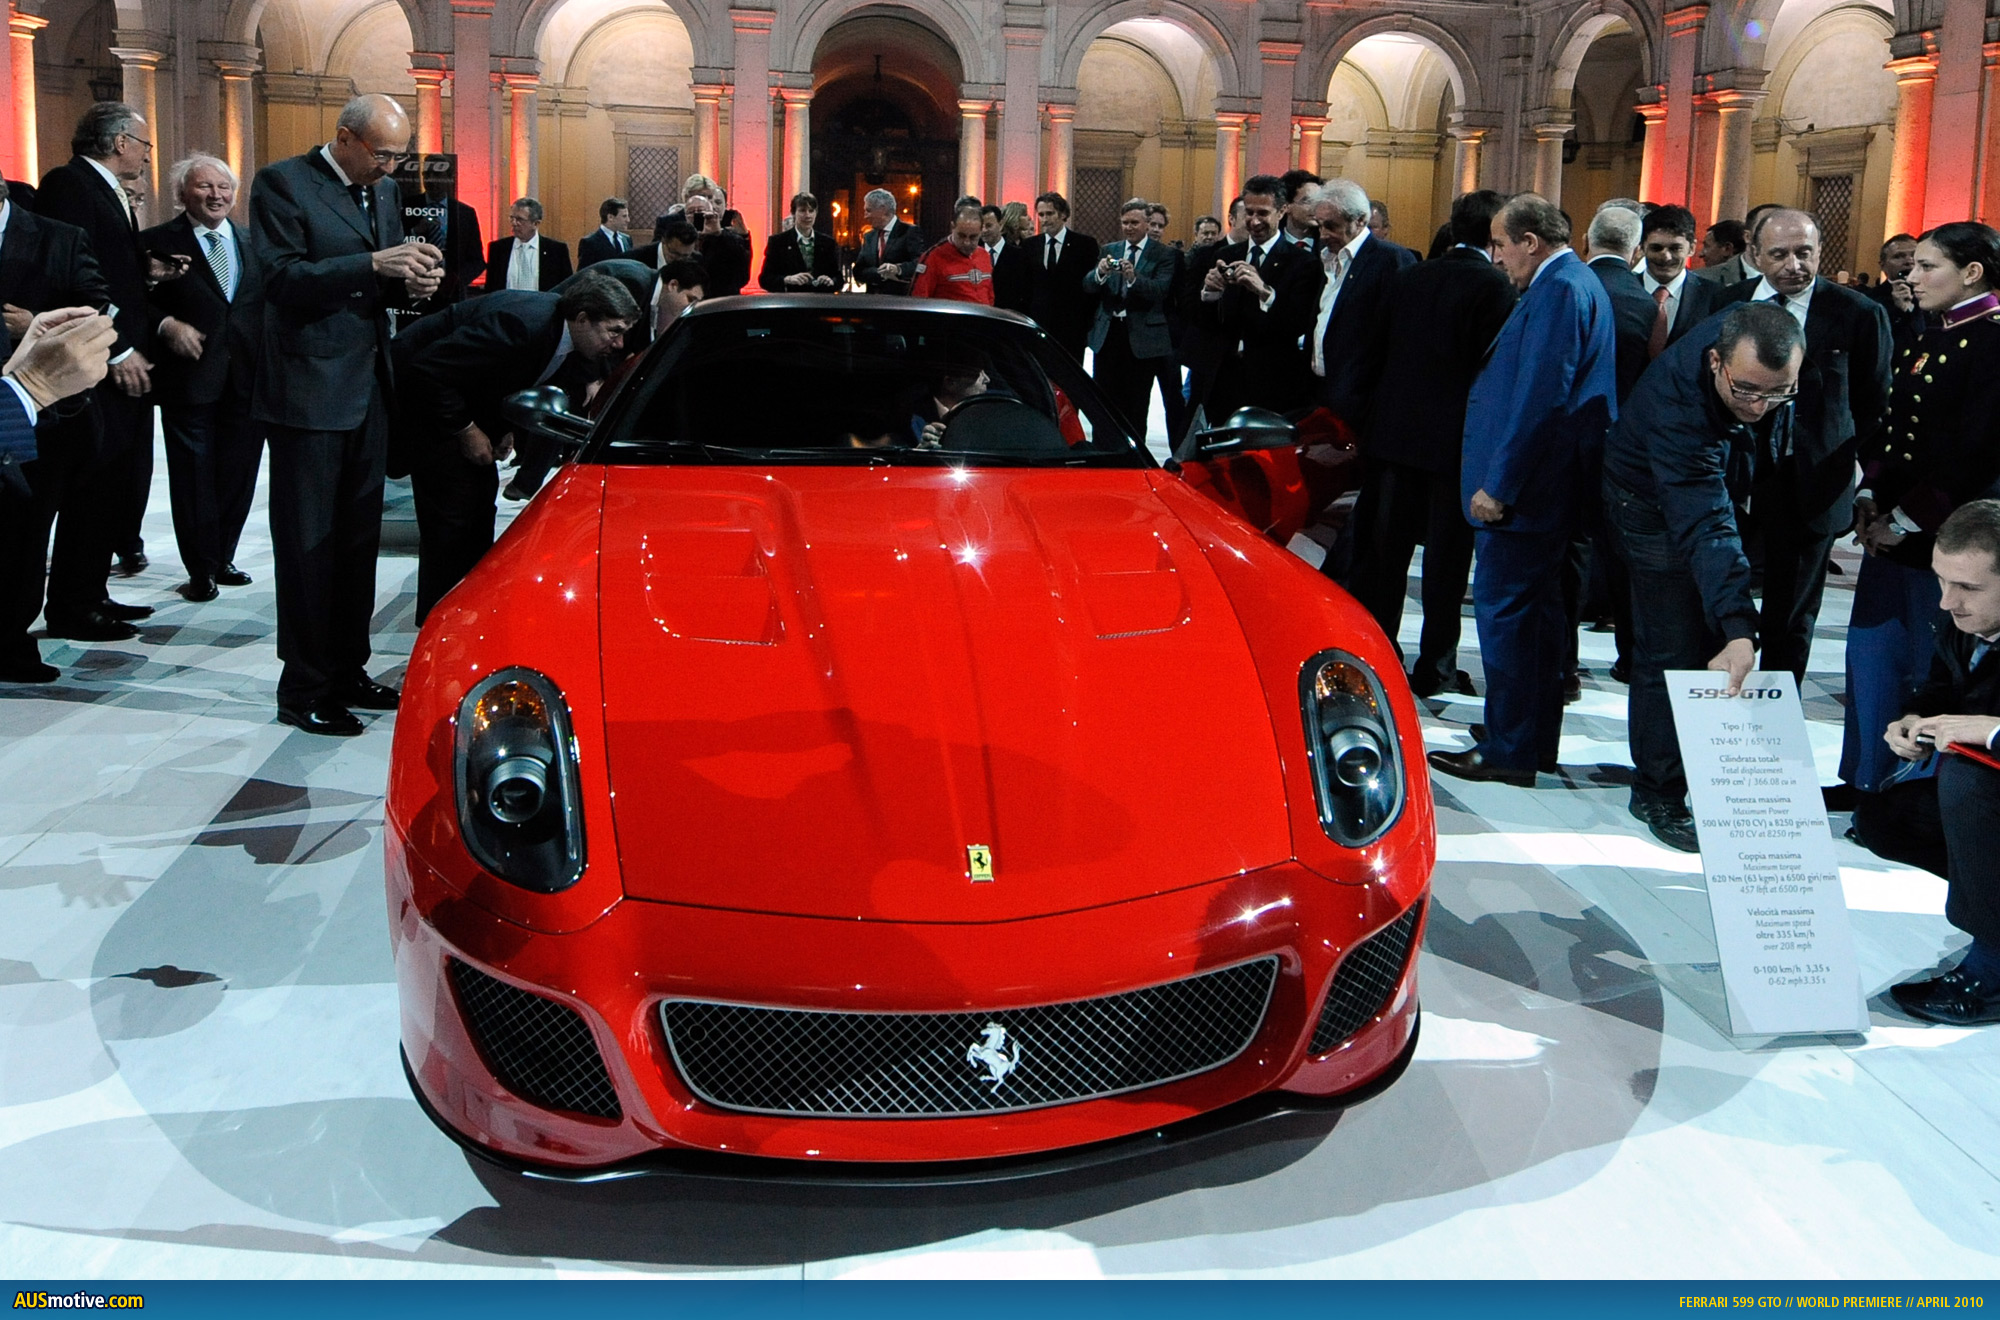 The event was held at the Military Academy's Ducal Palace and Ferrari's top